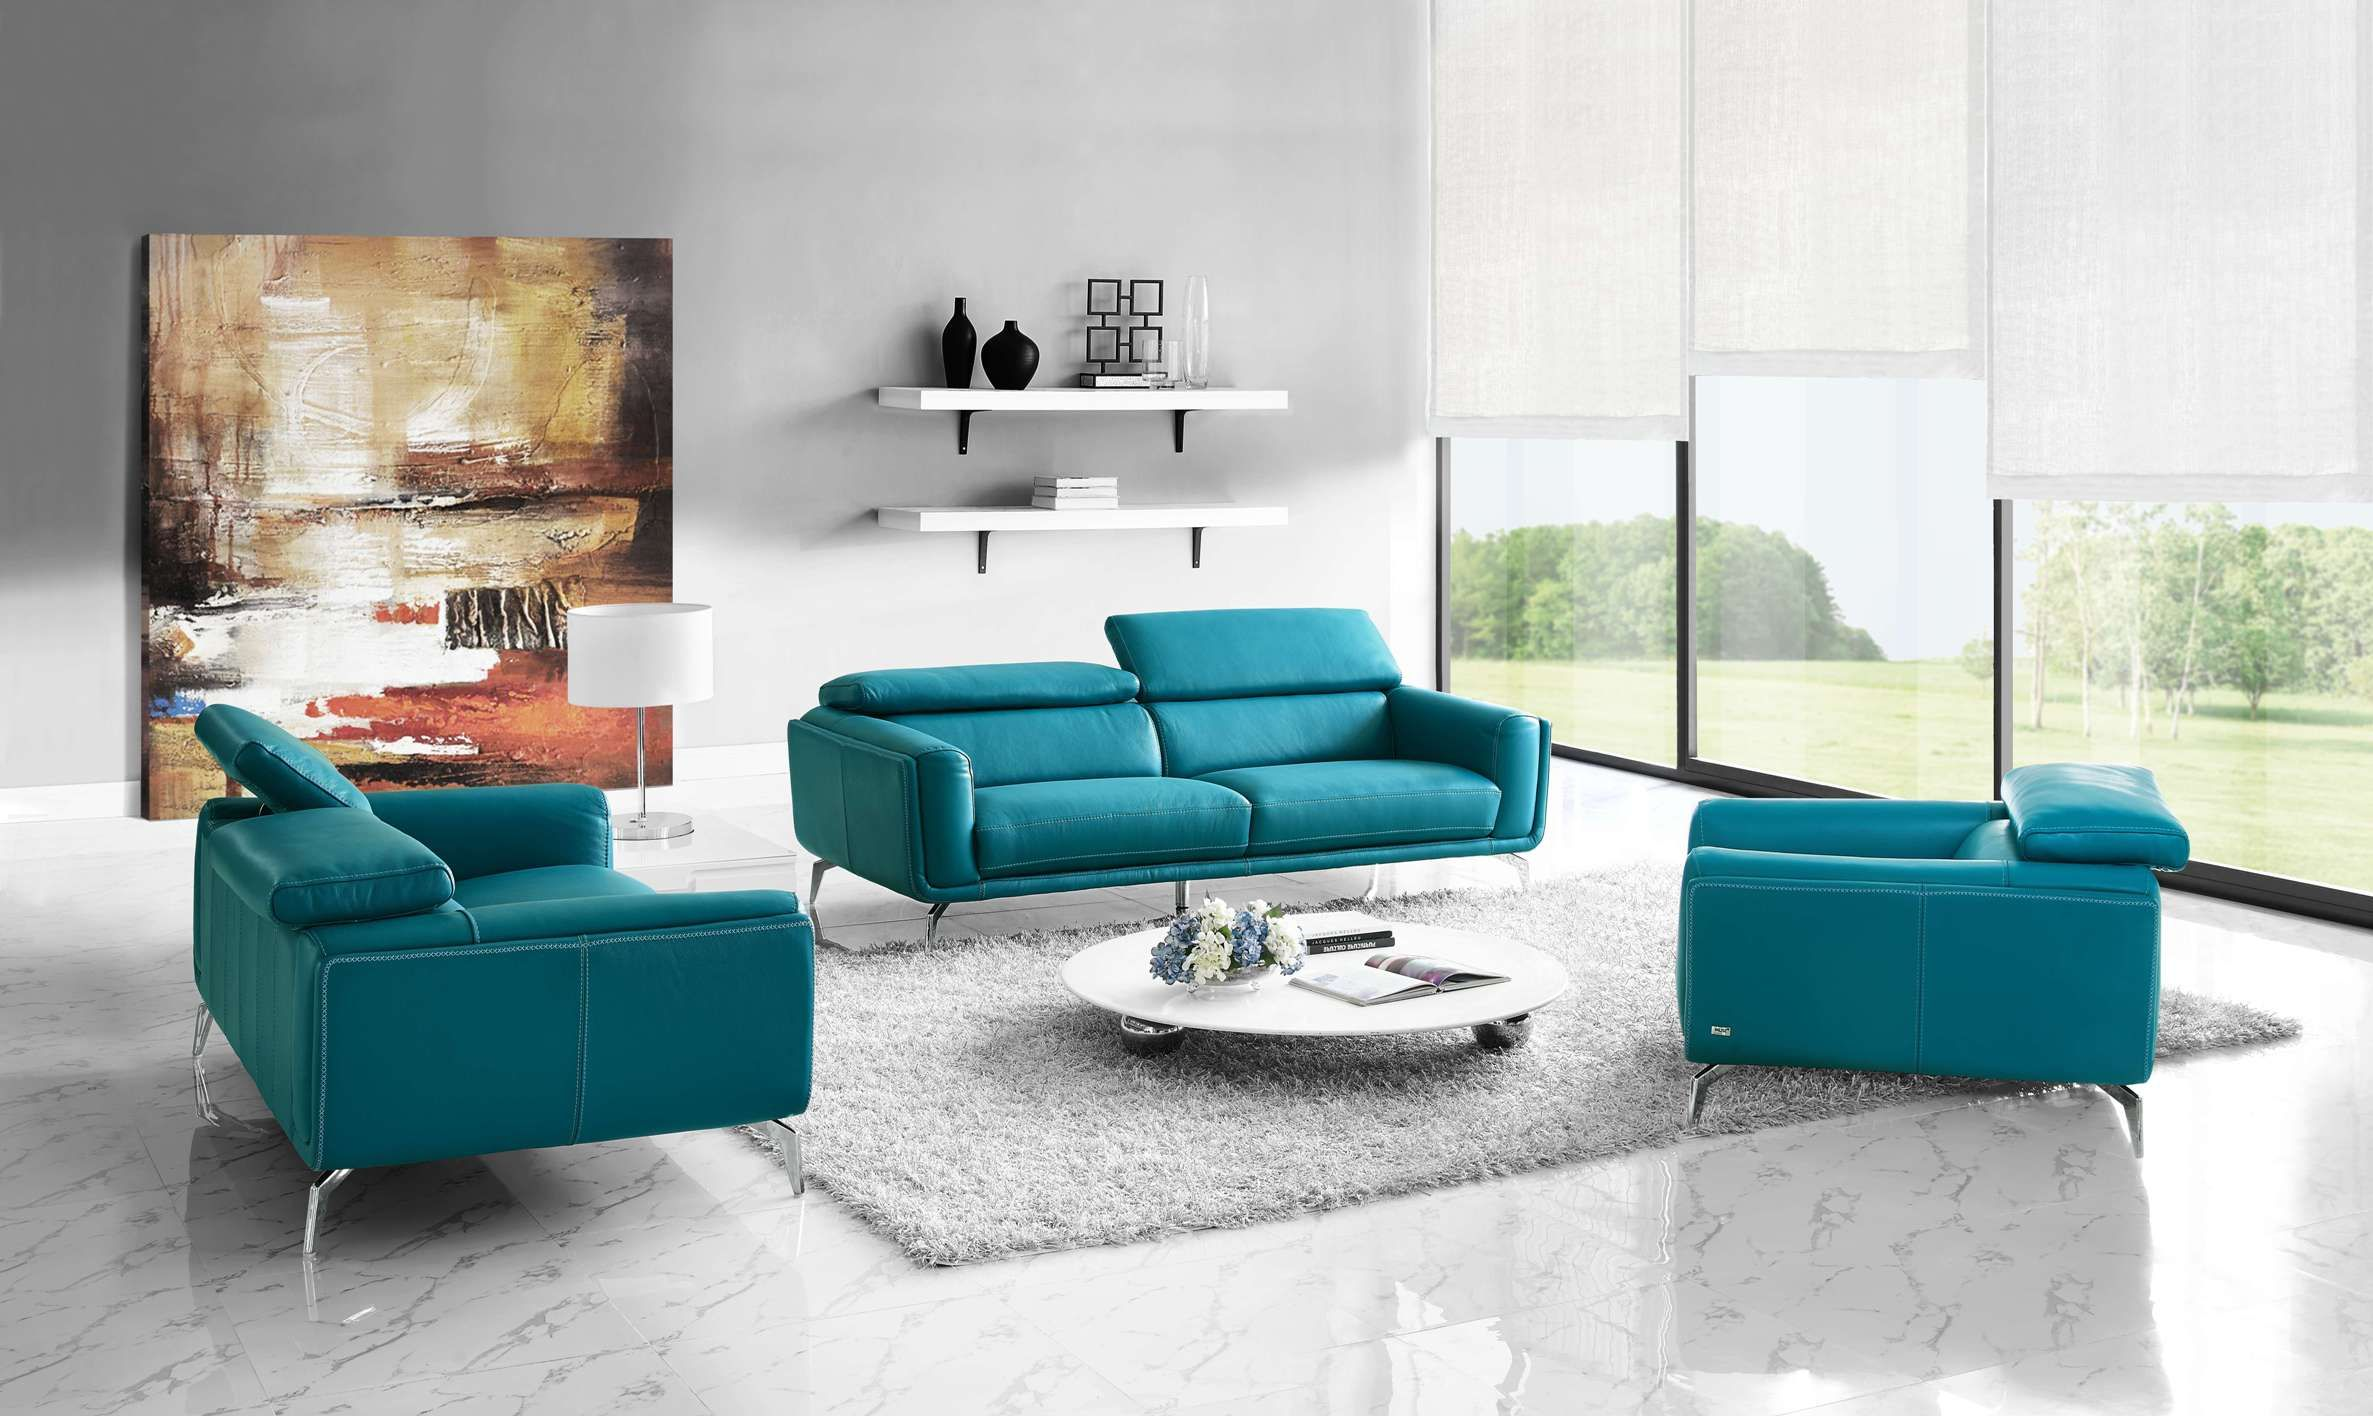 living room ideas with leather furniture%0A cool Teal Leather Sofa   New Teal Leather Sofa    About Remodel  Contemporary Sofa Inspiration with